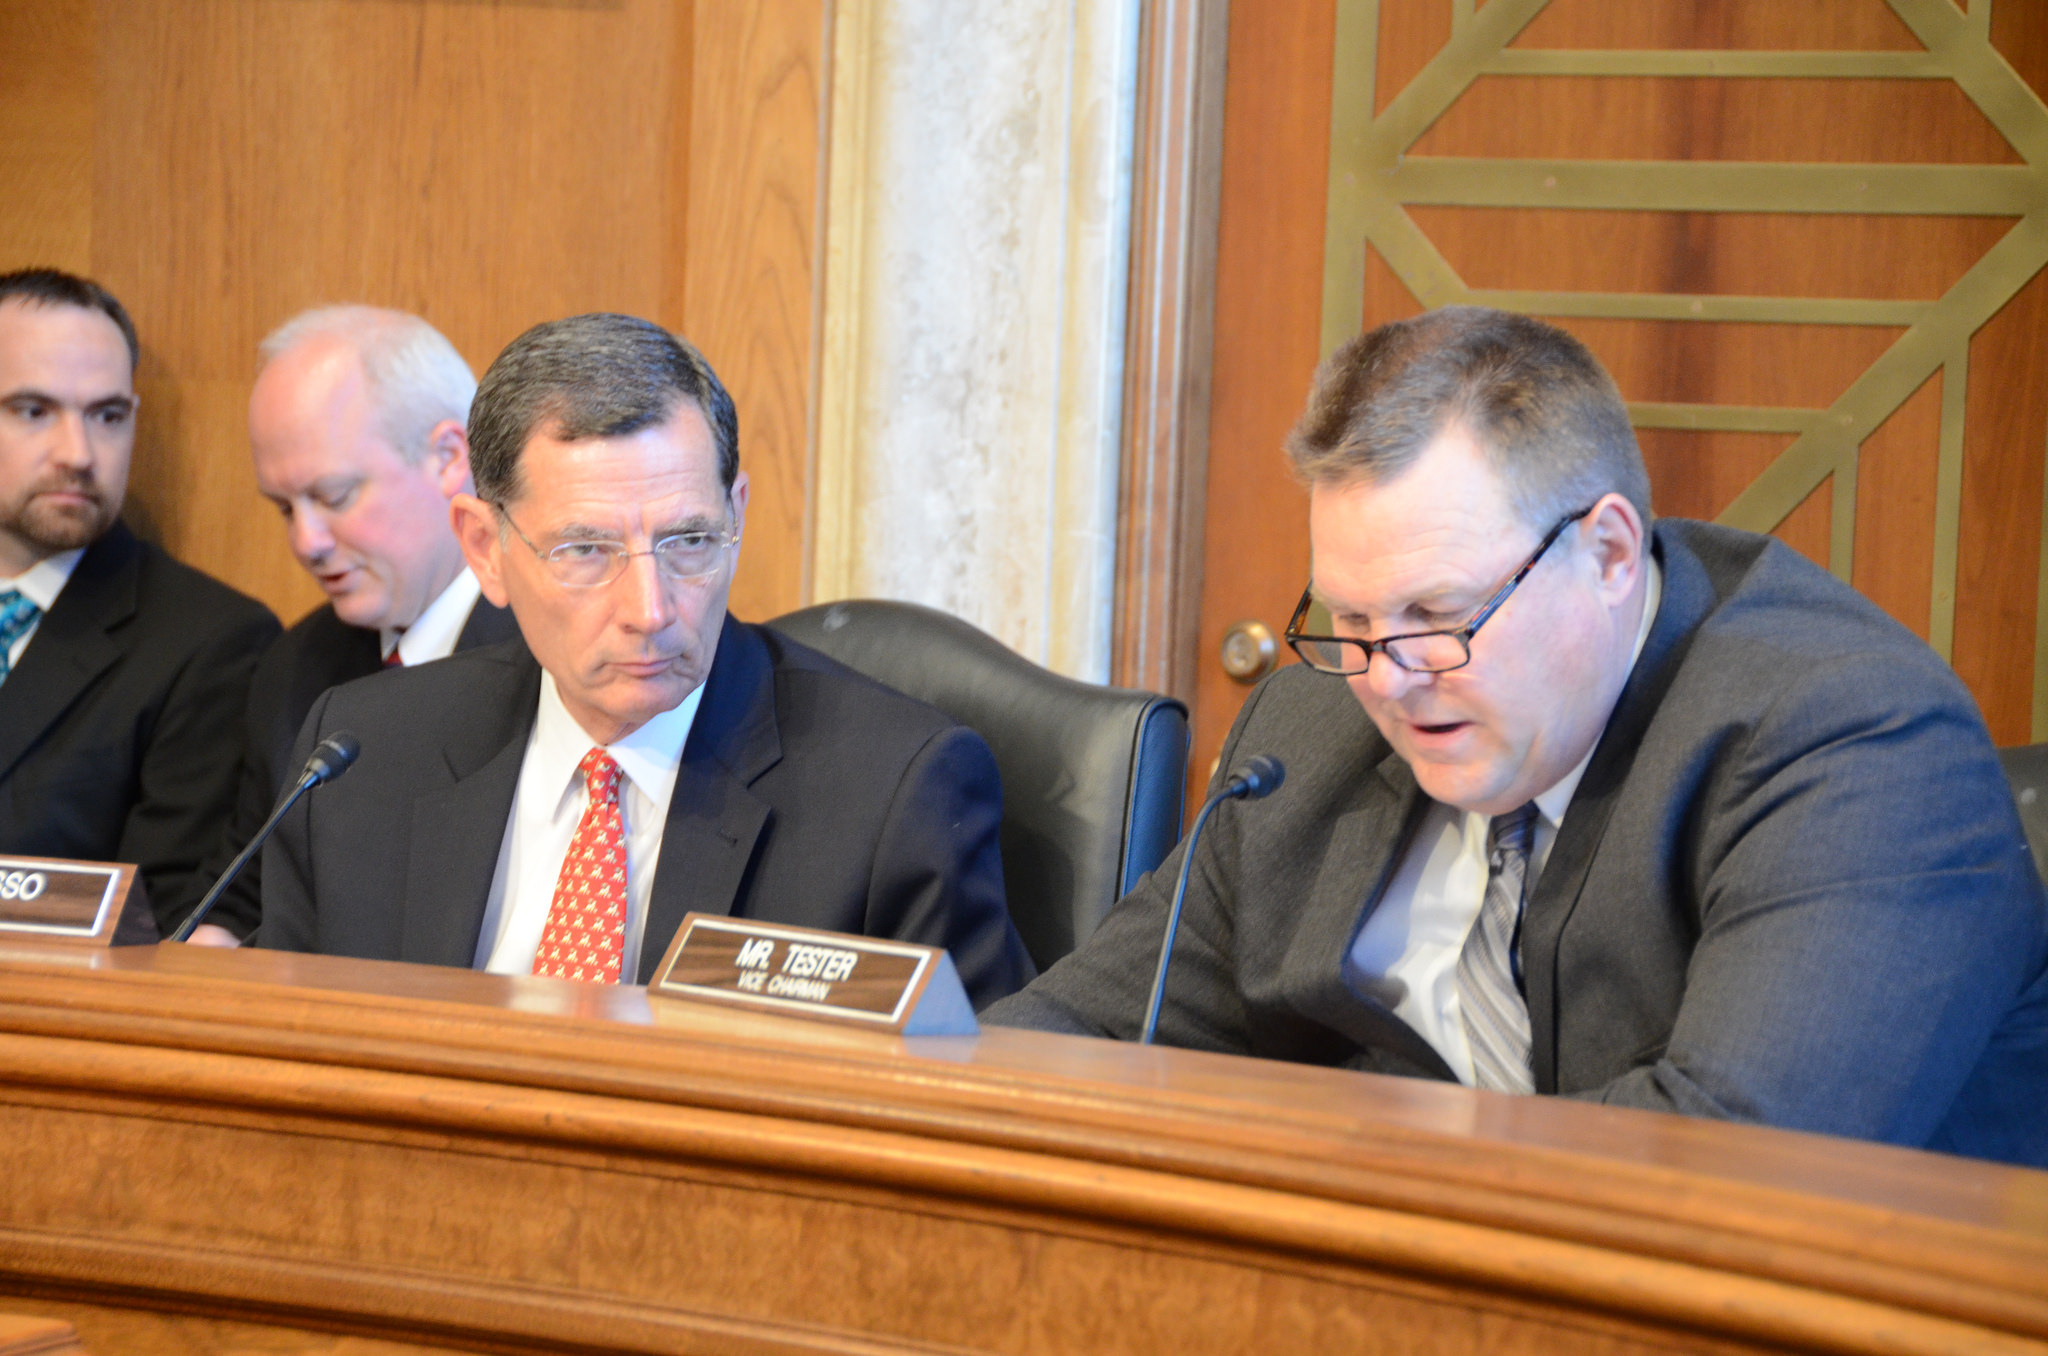 Senate Indian Affairs Committee schedules meeting and hearing